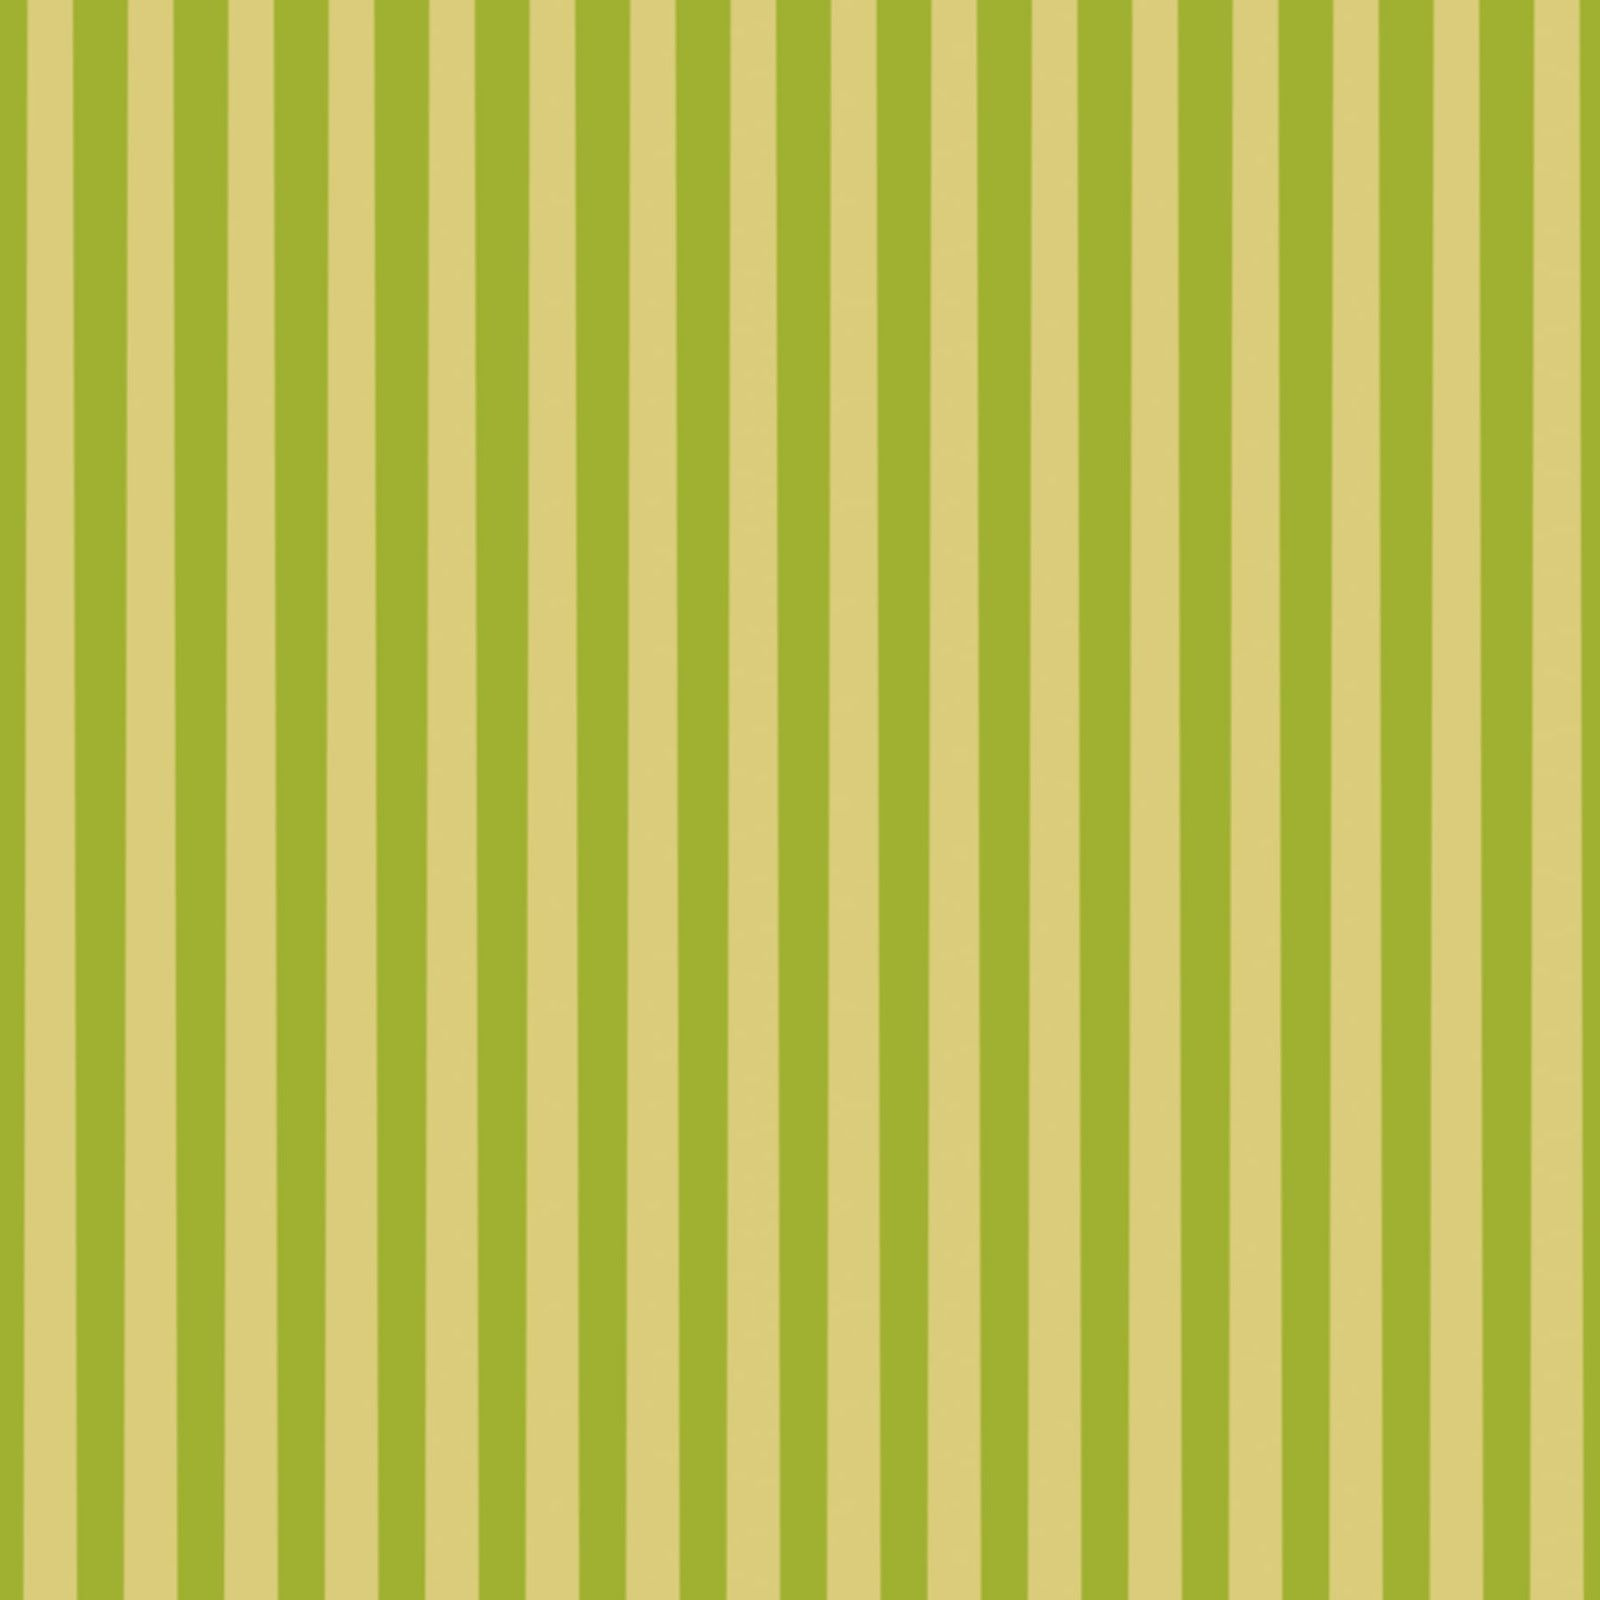 free-digital-scrapbook-paper-green-stripes.jpg 1.600×1.600 pixel